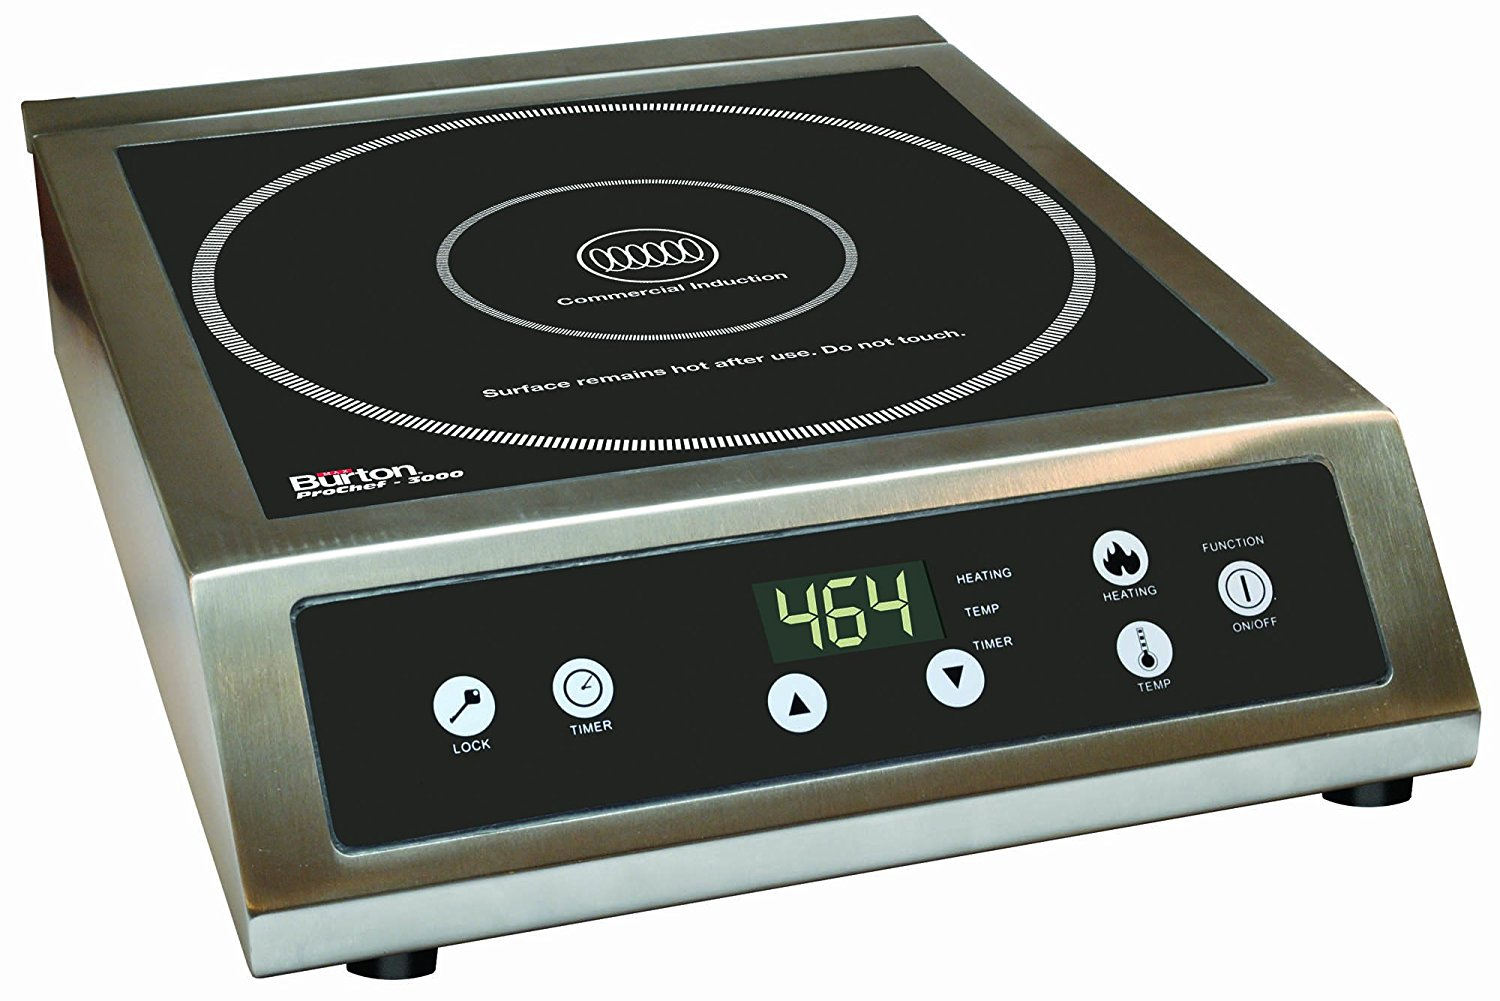 Max Burton 6530 Prochef 3000 Watts Commercial Induction Cooktop Review